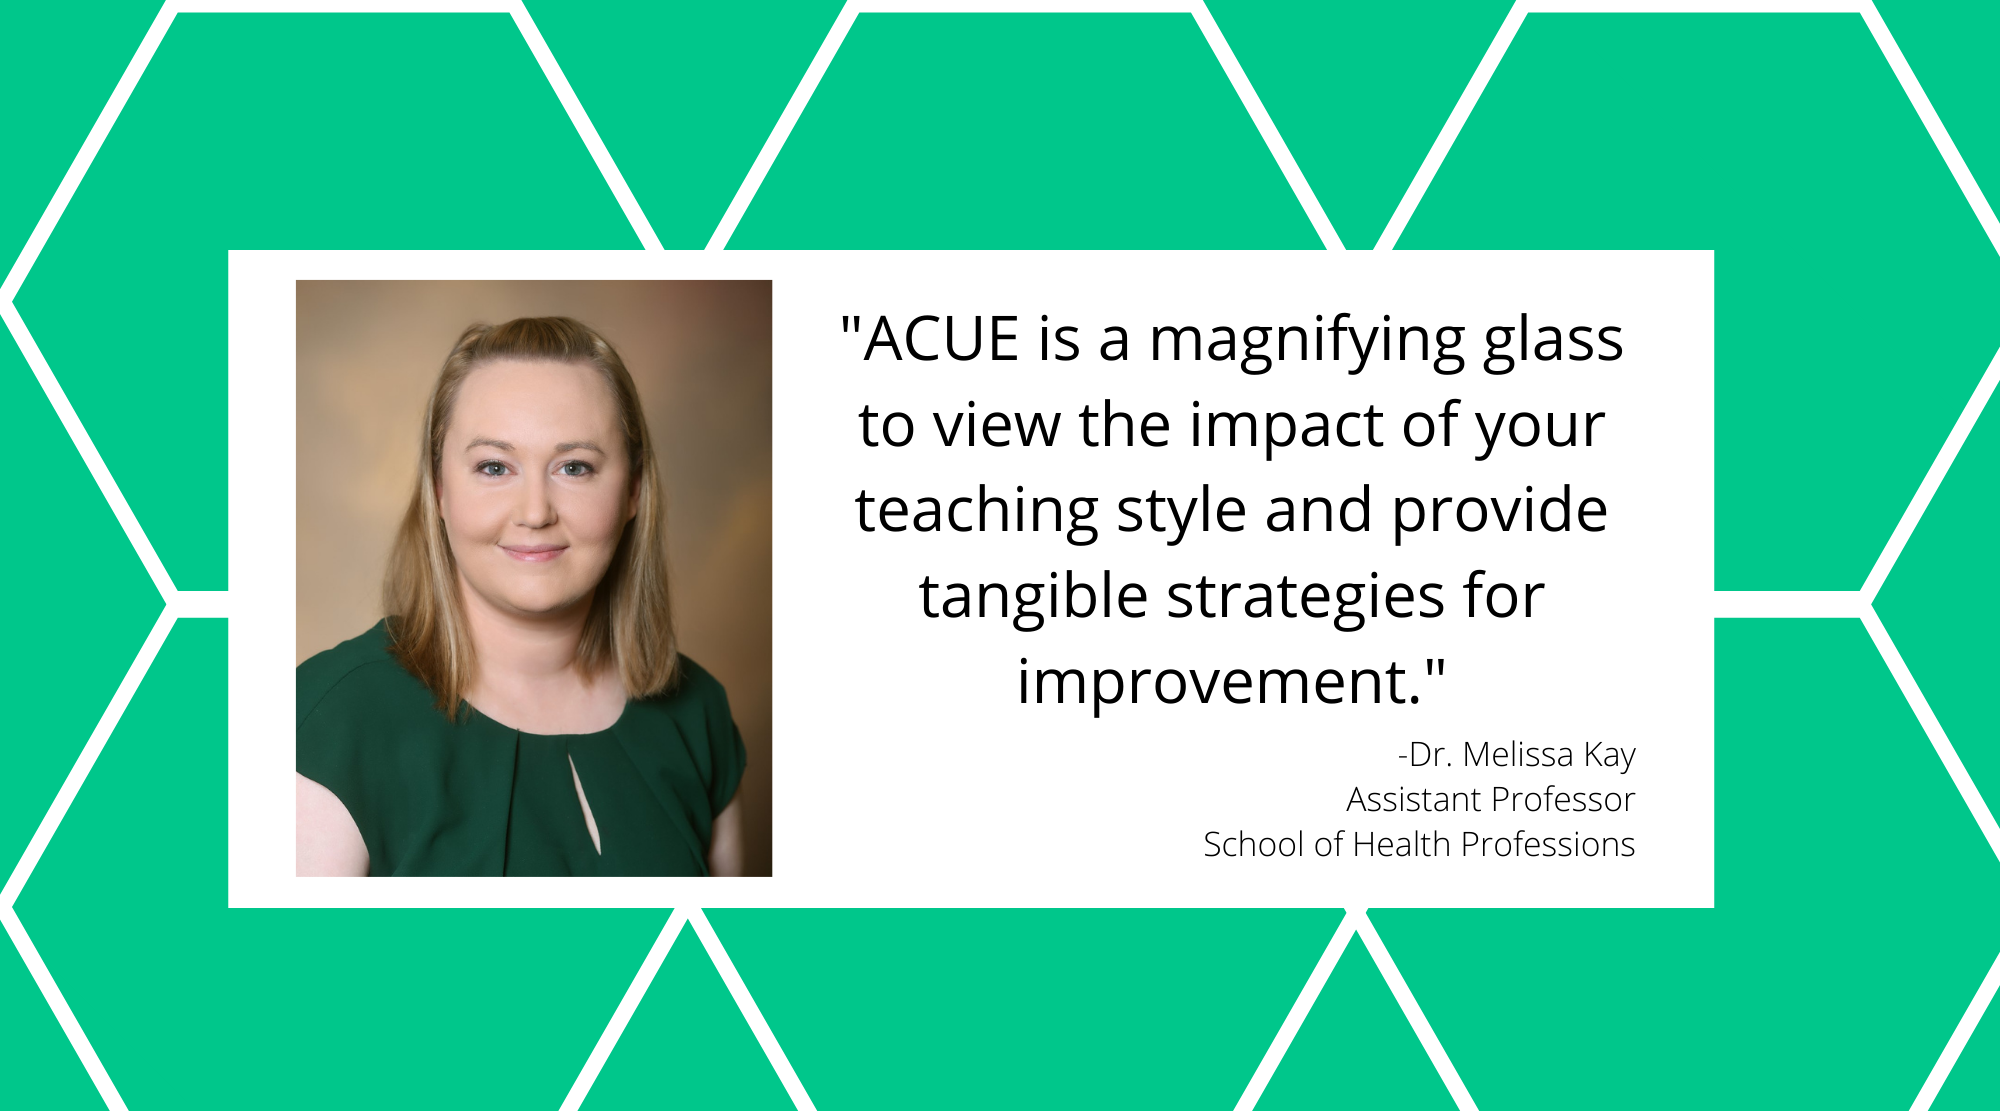 Quote from ACUE Testimonial by Dr. Melissa Kay from the School of Health Professions.